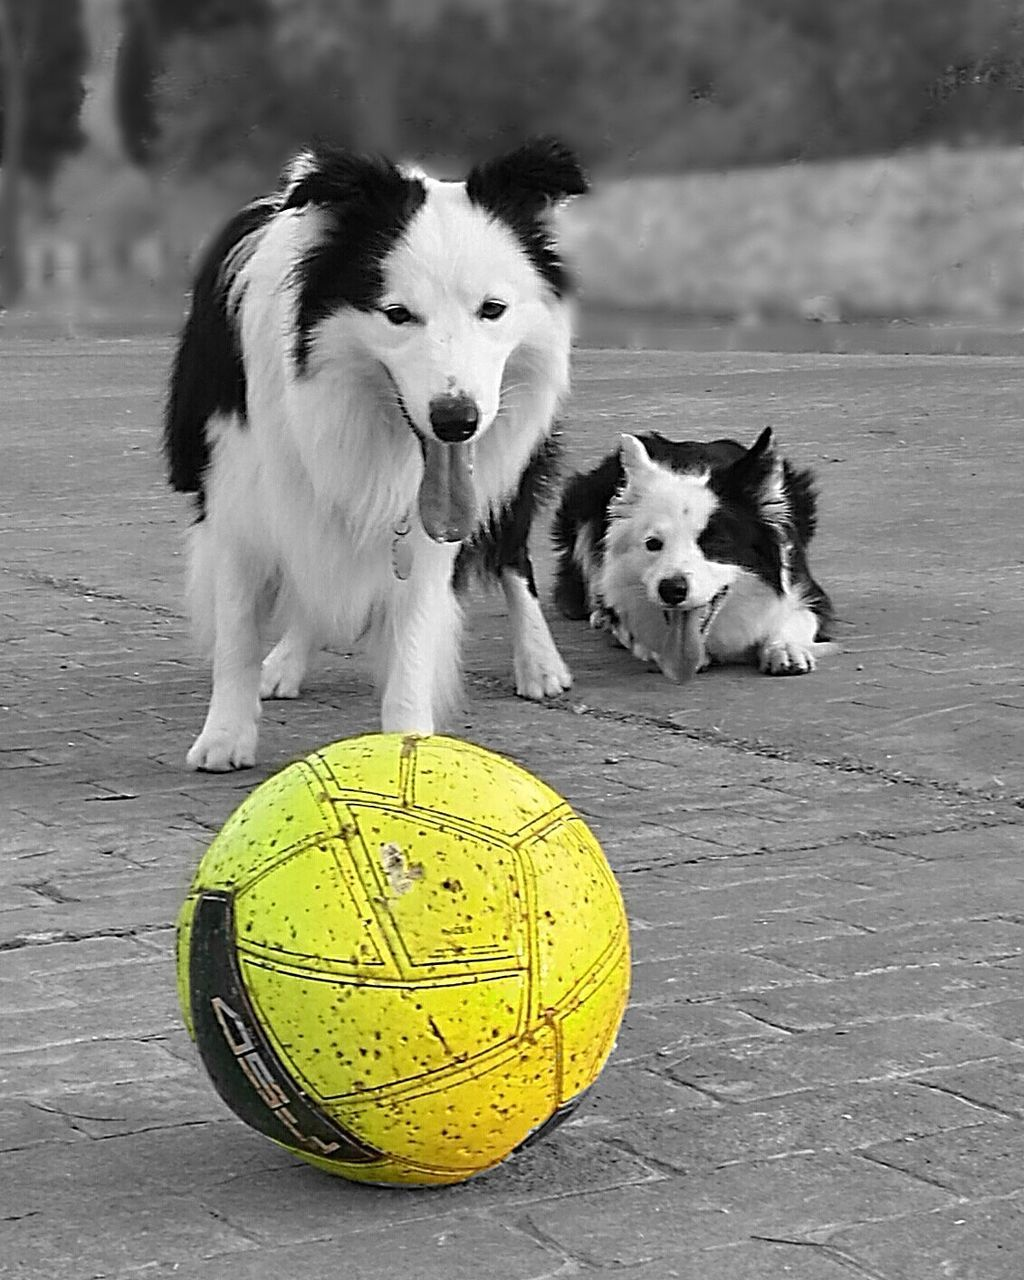 dog, pets, animal themes, domestic animals, one animal, no people, looking at camera, ball, portrait, mammal, day, outdoors